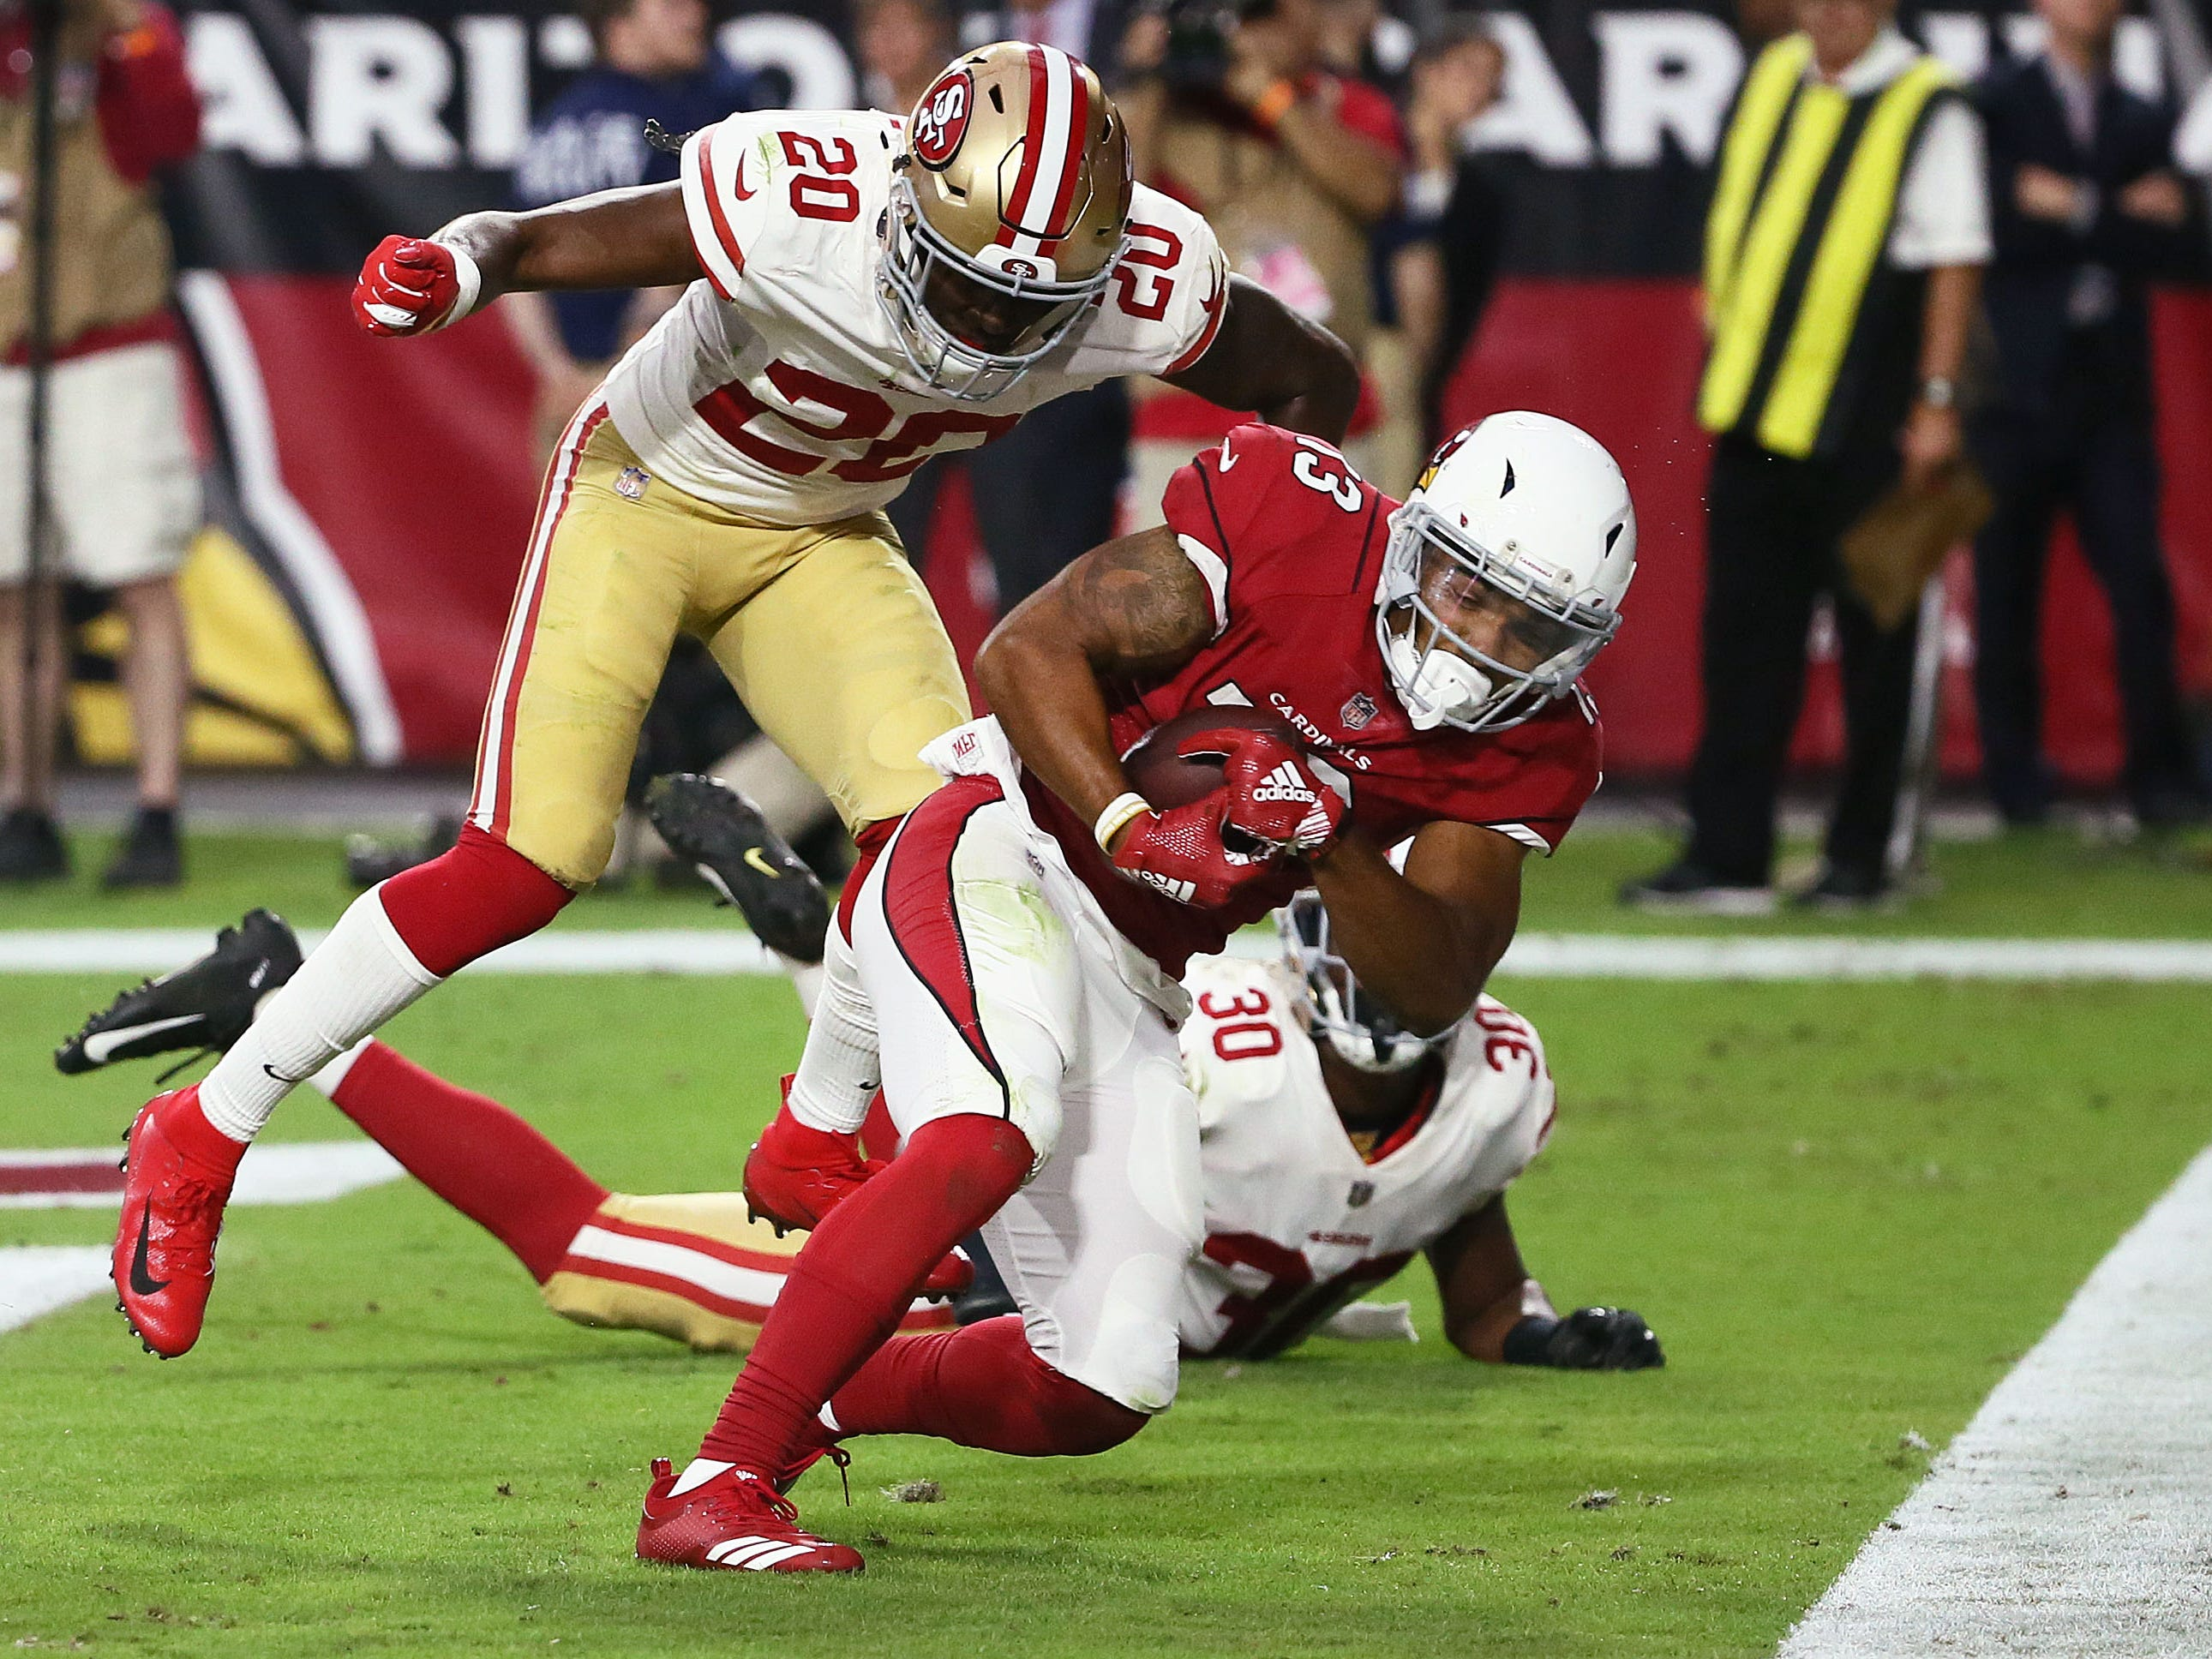 Arizona Cardinals wide receiver Christian Kirk catches the game winning touchdown from quarterback Josh Rosen against the San Francisco 49ers in the fourth quarter during a game on Oct. 28 at State Farm Stadium.